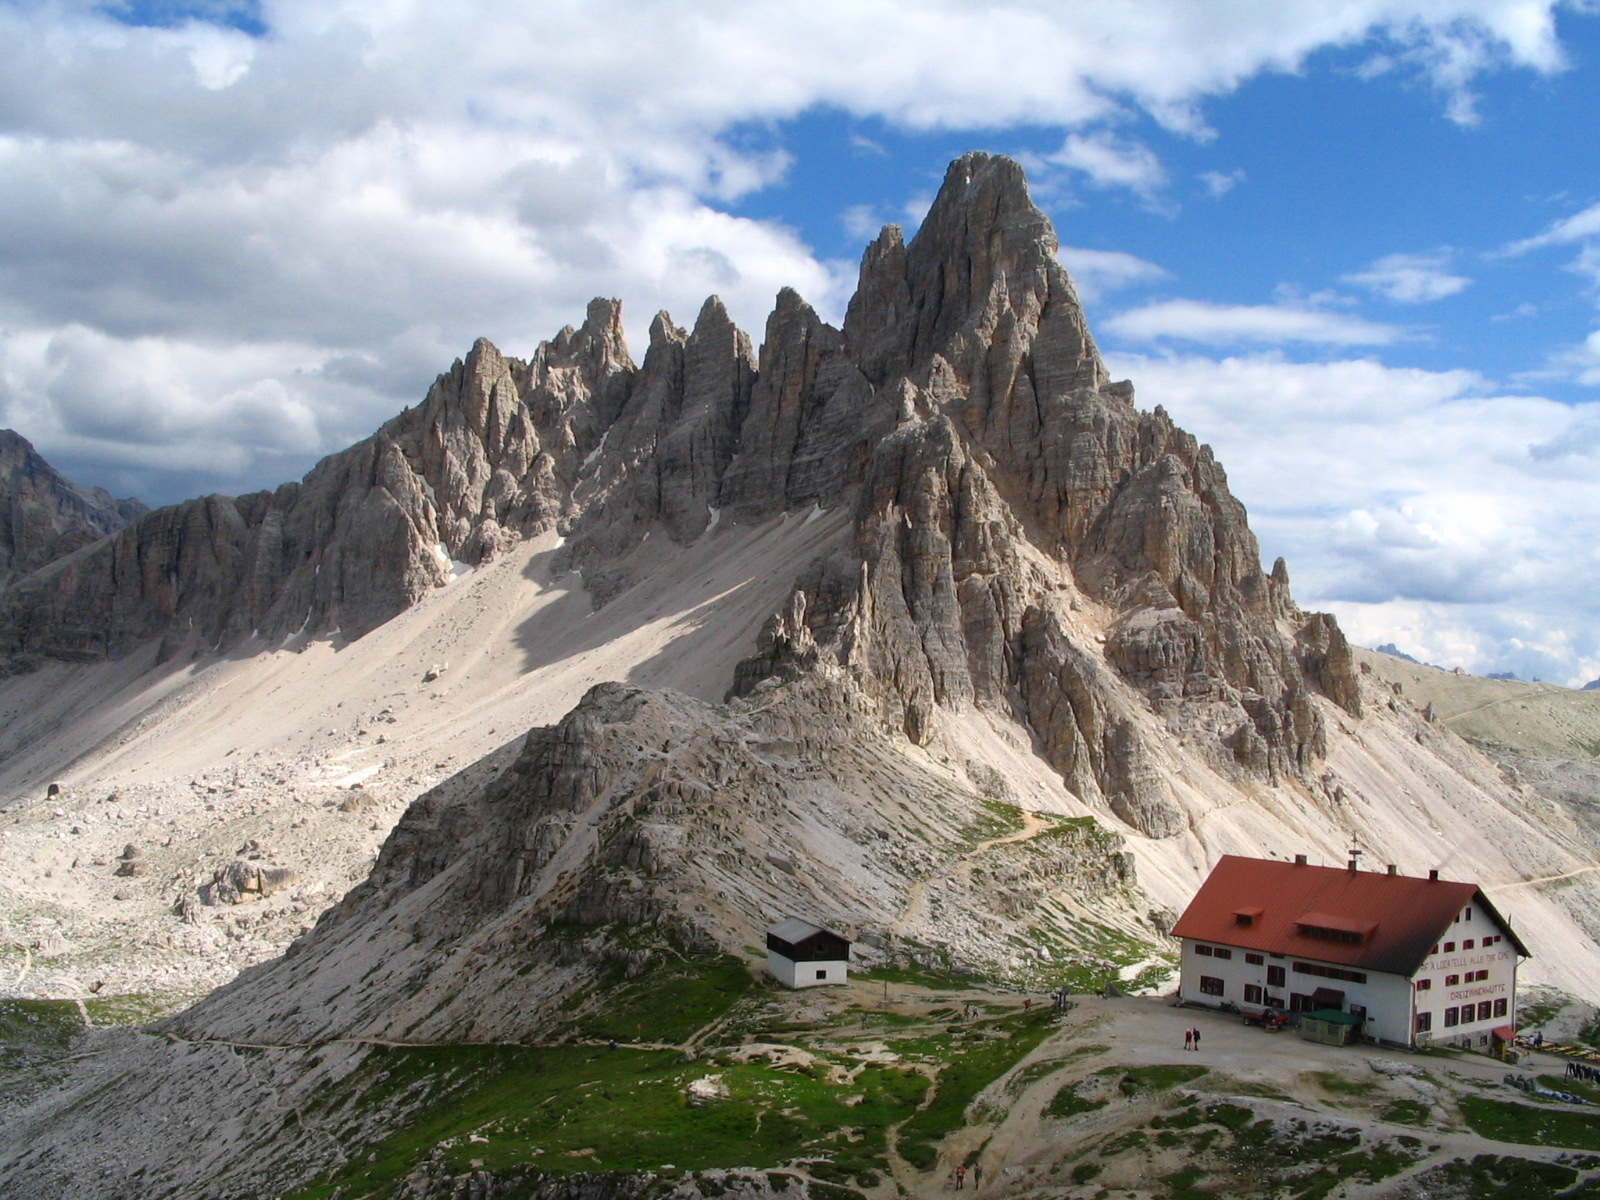 The Dolomites – UNESCO World Heritage